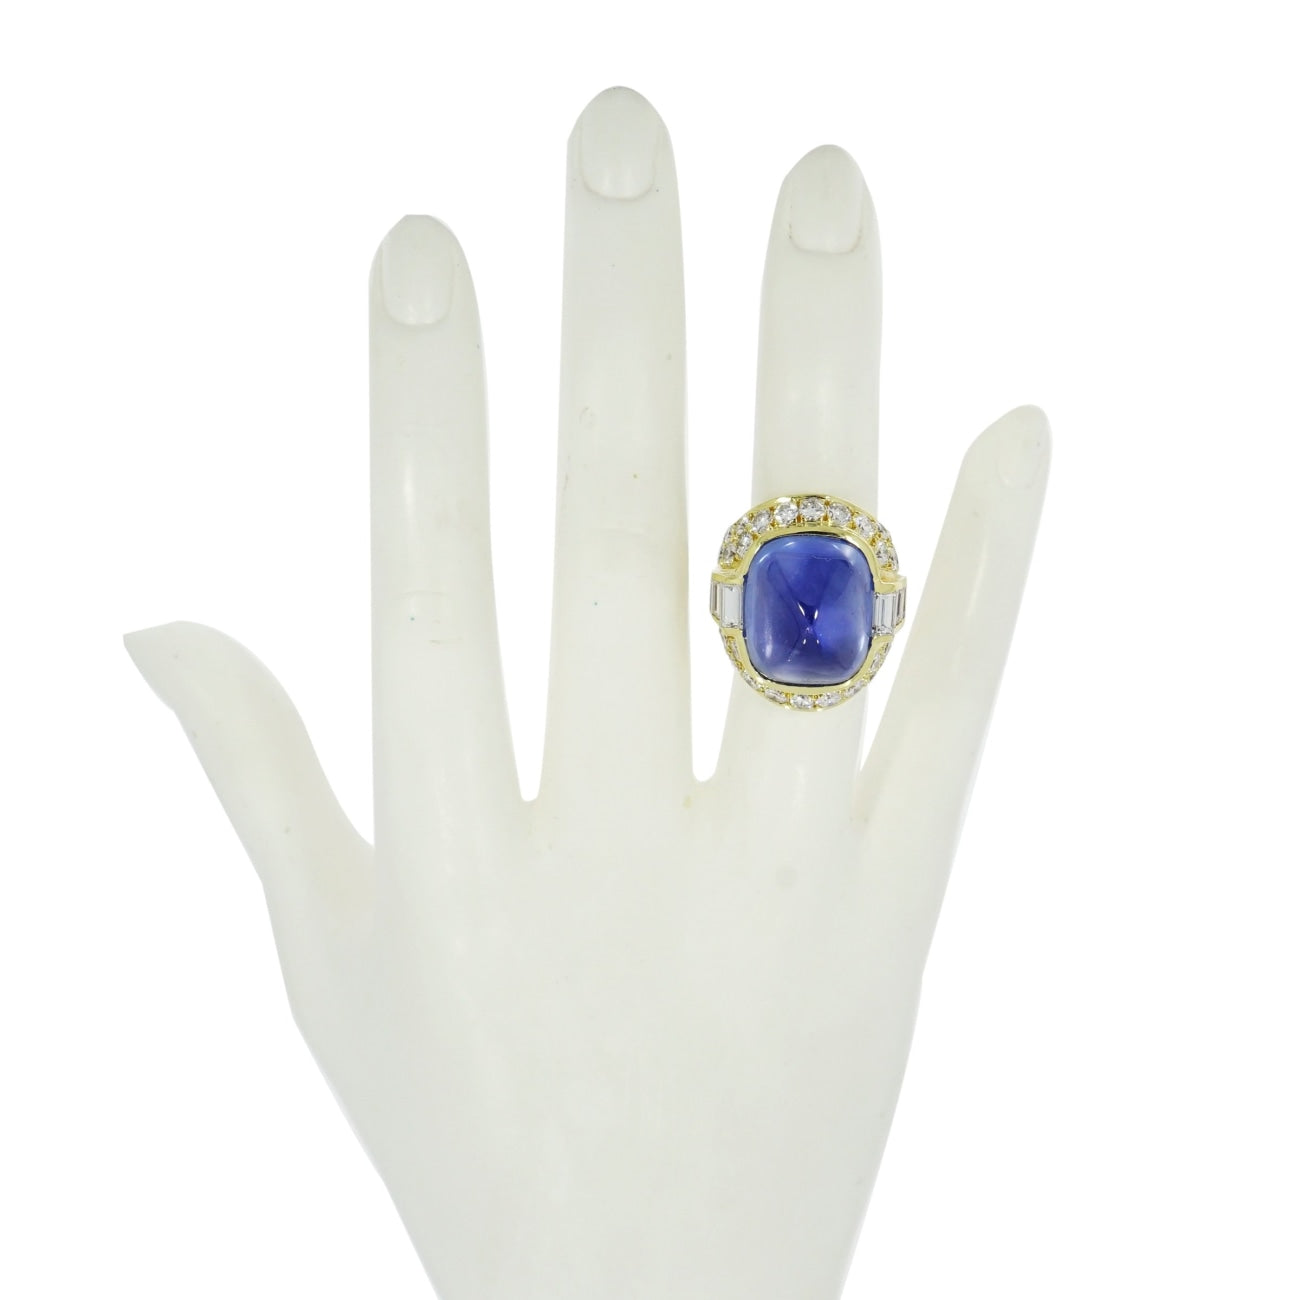 GIA certified Natural Unheated Sapphire and Diamond Yellow Gold Ring